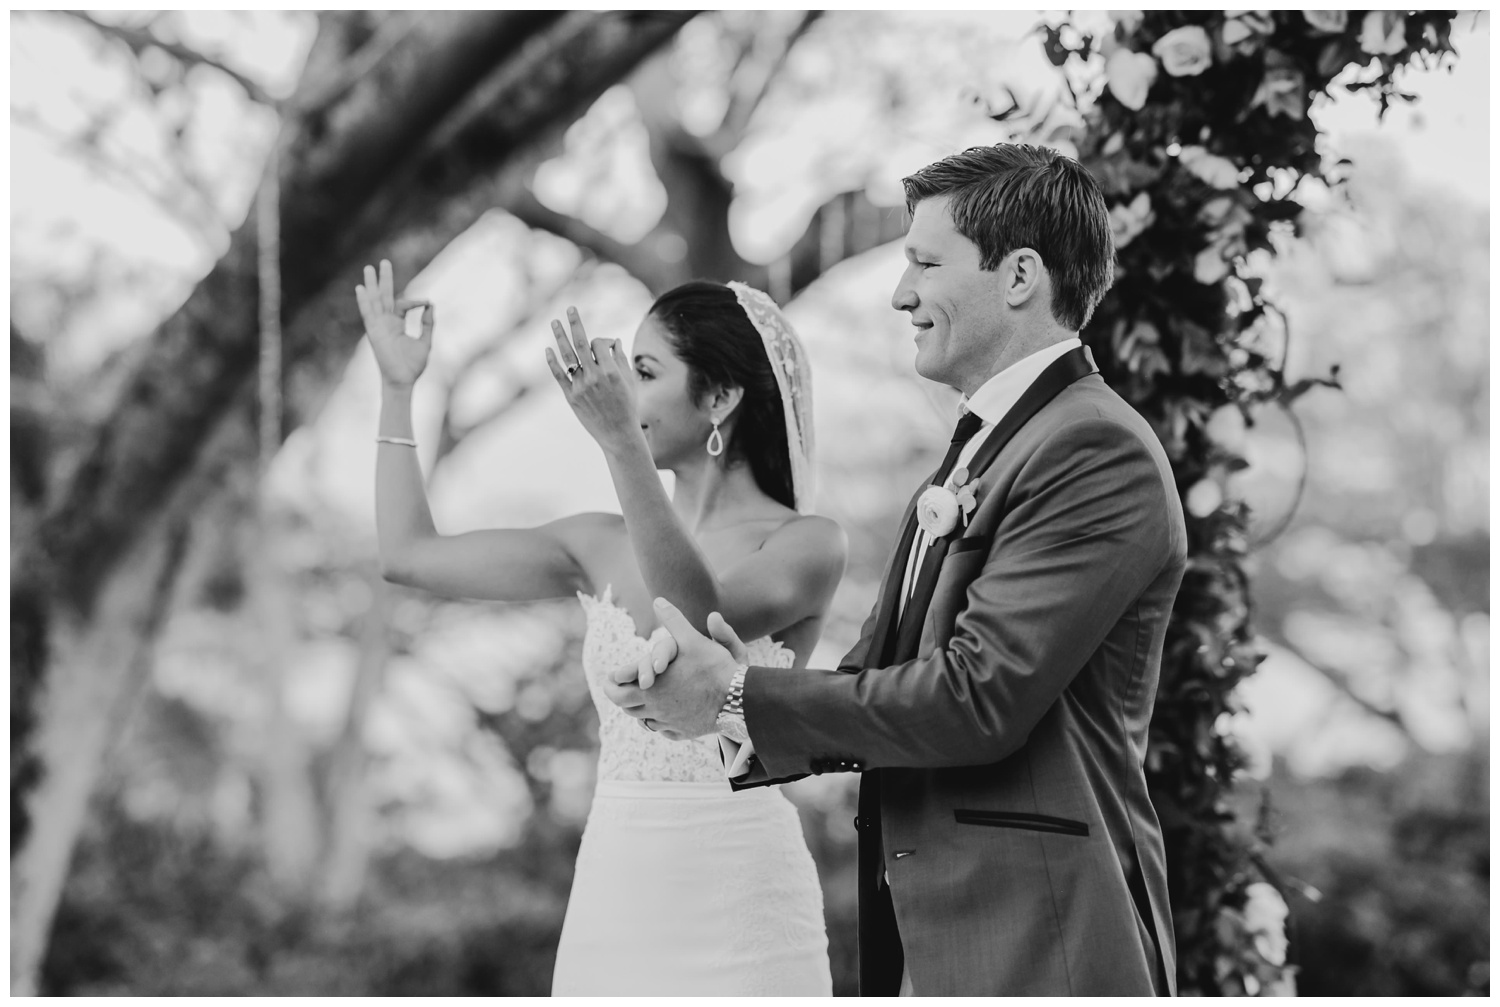 adriana_rivera_miranda_weddings_el_salvador_27.jpg